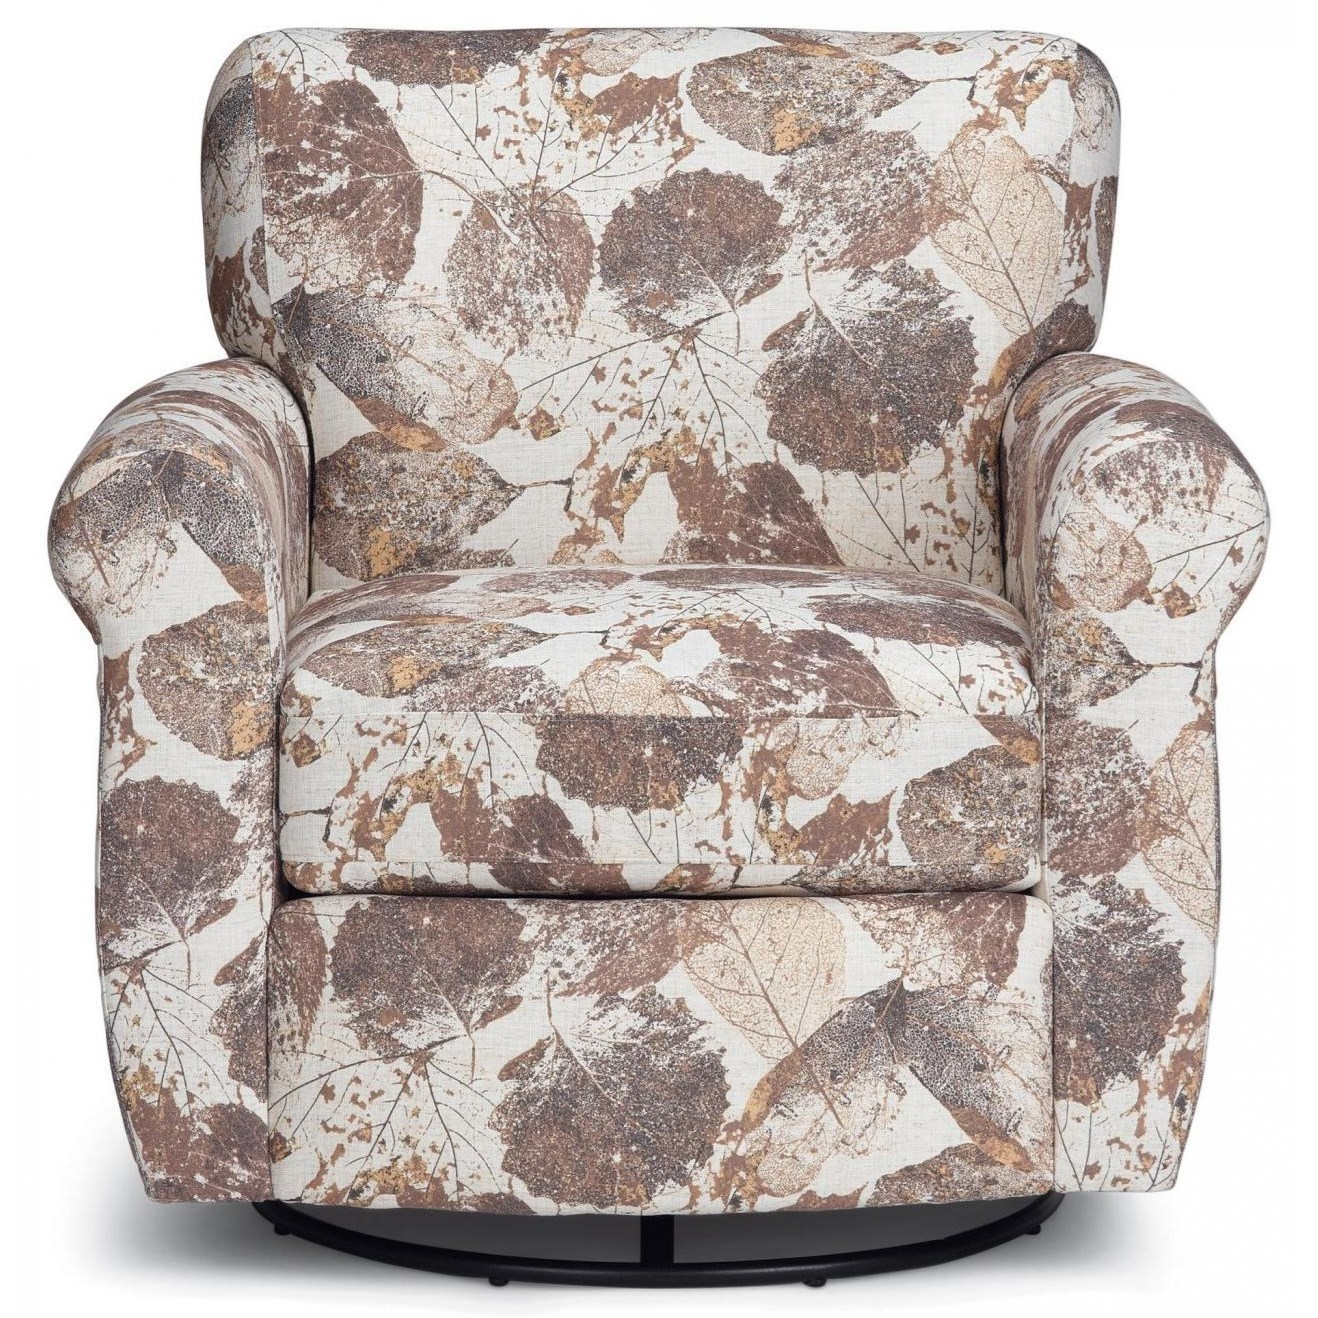 Gemily Swivel Chair by Best Home Furnishings at Walker's Furniture